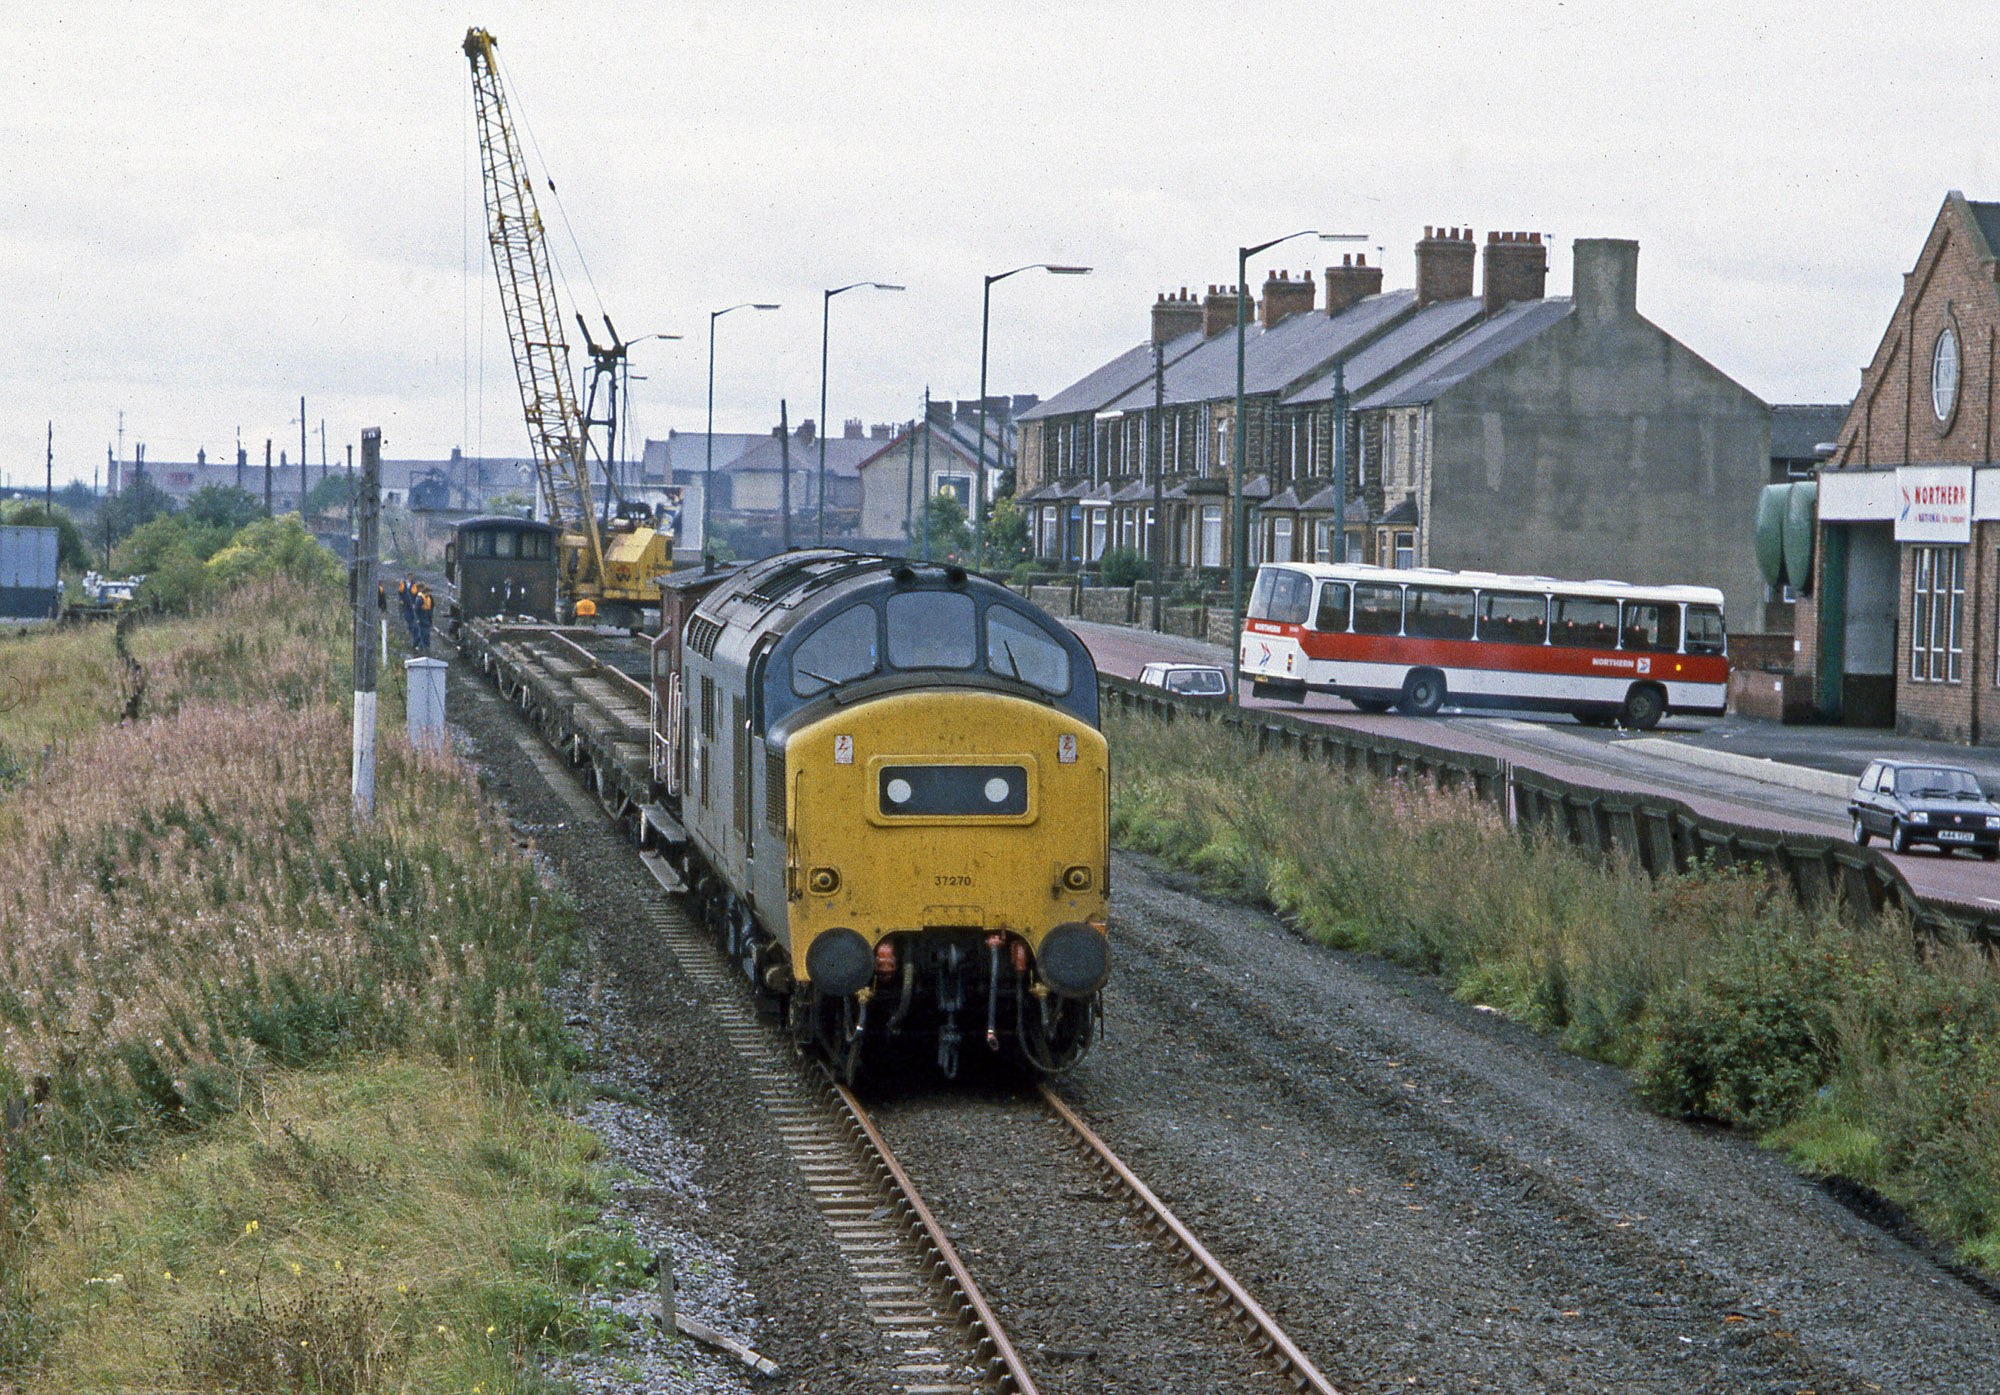 37270 heads the final train to leave Consett on 25 September 1984 with the track literally being lifted being the train. Photo copyright Stephen McGahon